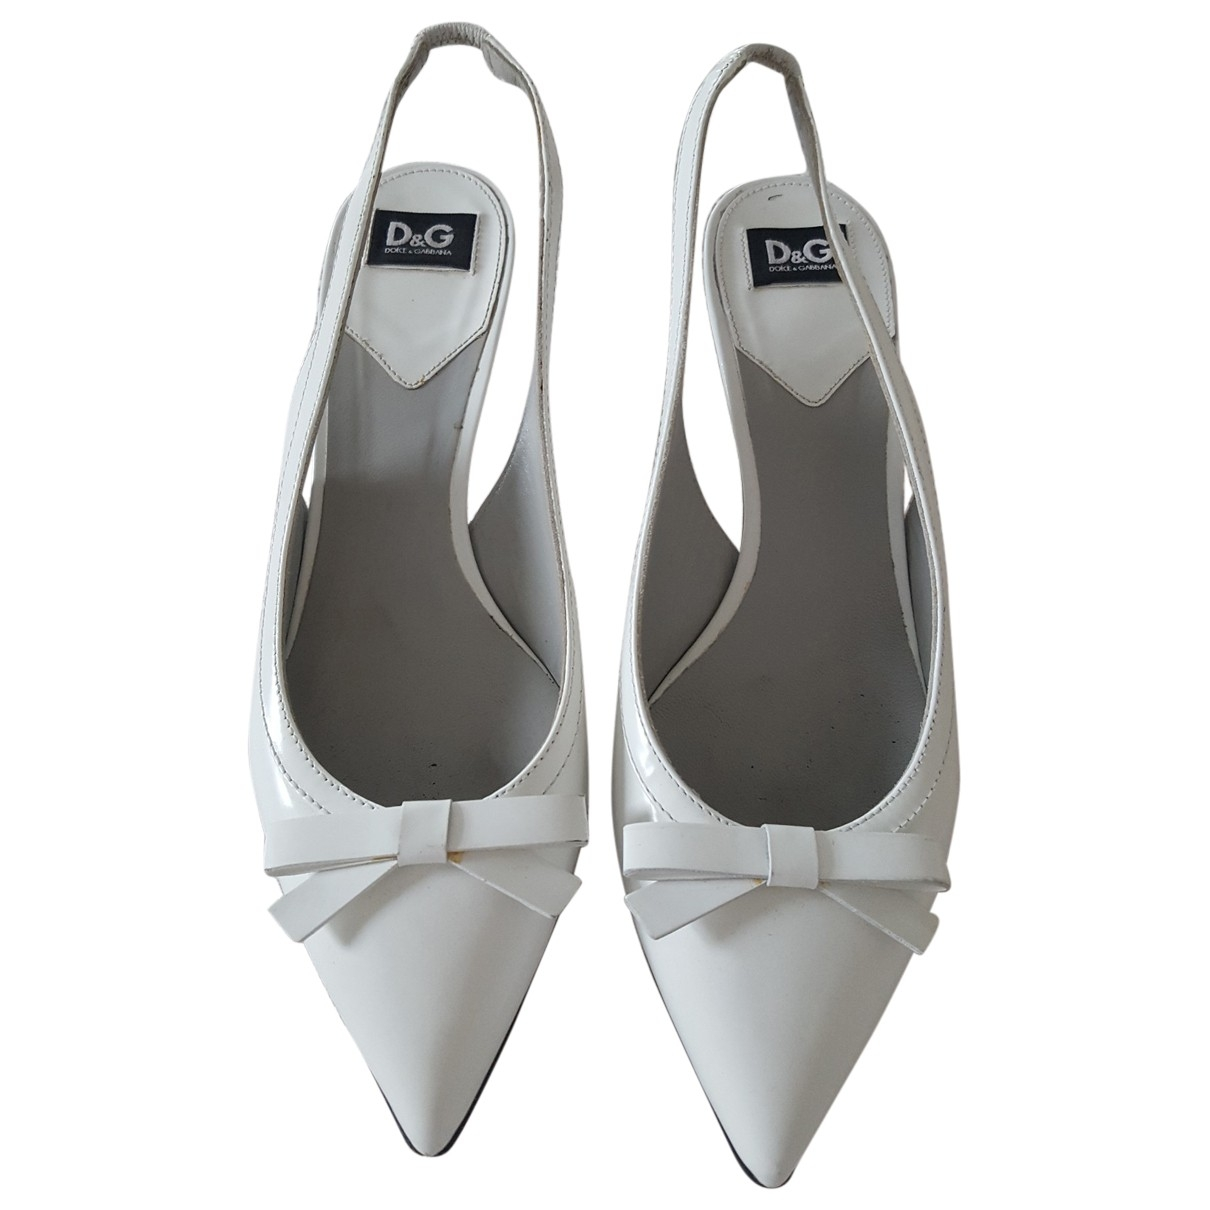 D&g \N White Leather Heels for Women 37 EU